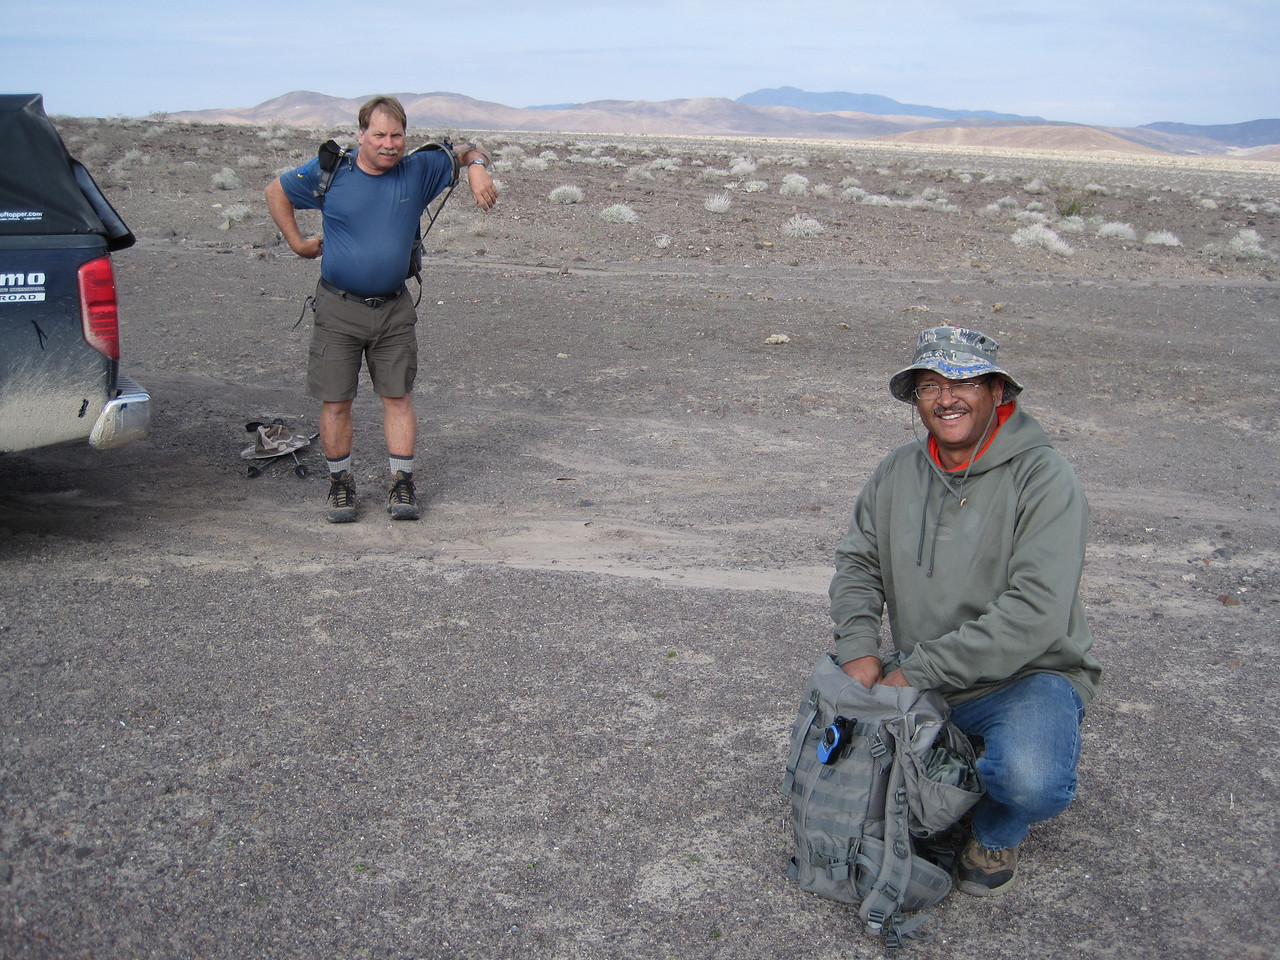 Lewis (left) and Luis (right) prepare for a day of exploring some rugged terrain.